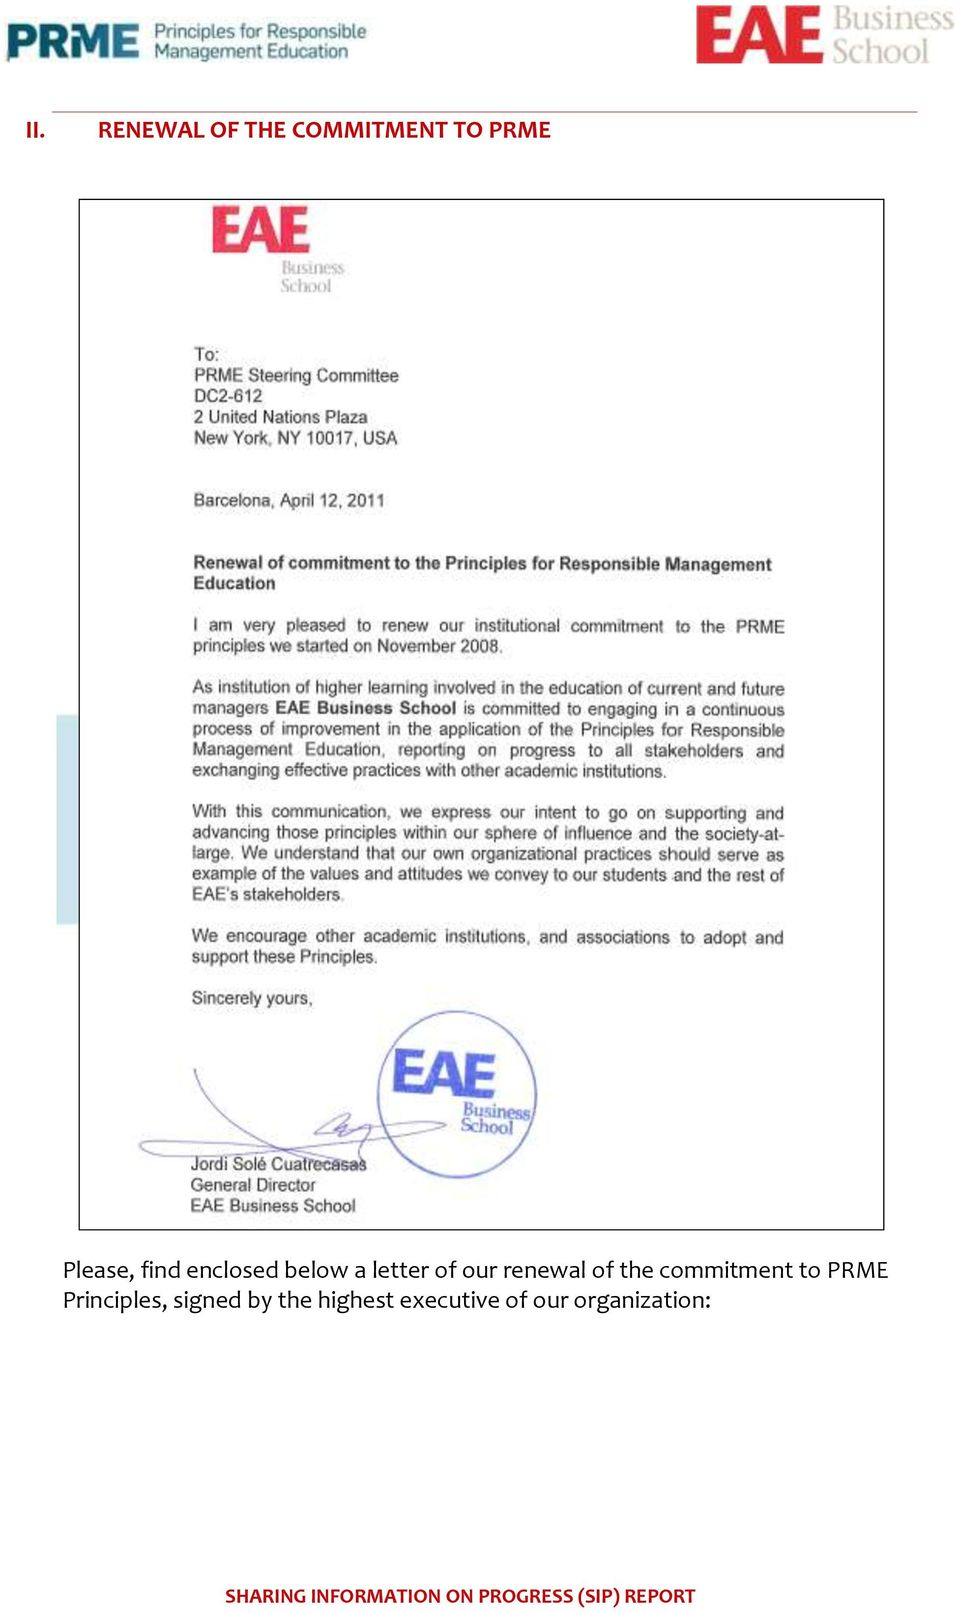 renewal of the commitment to PRME